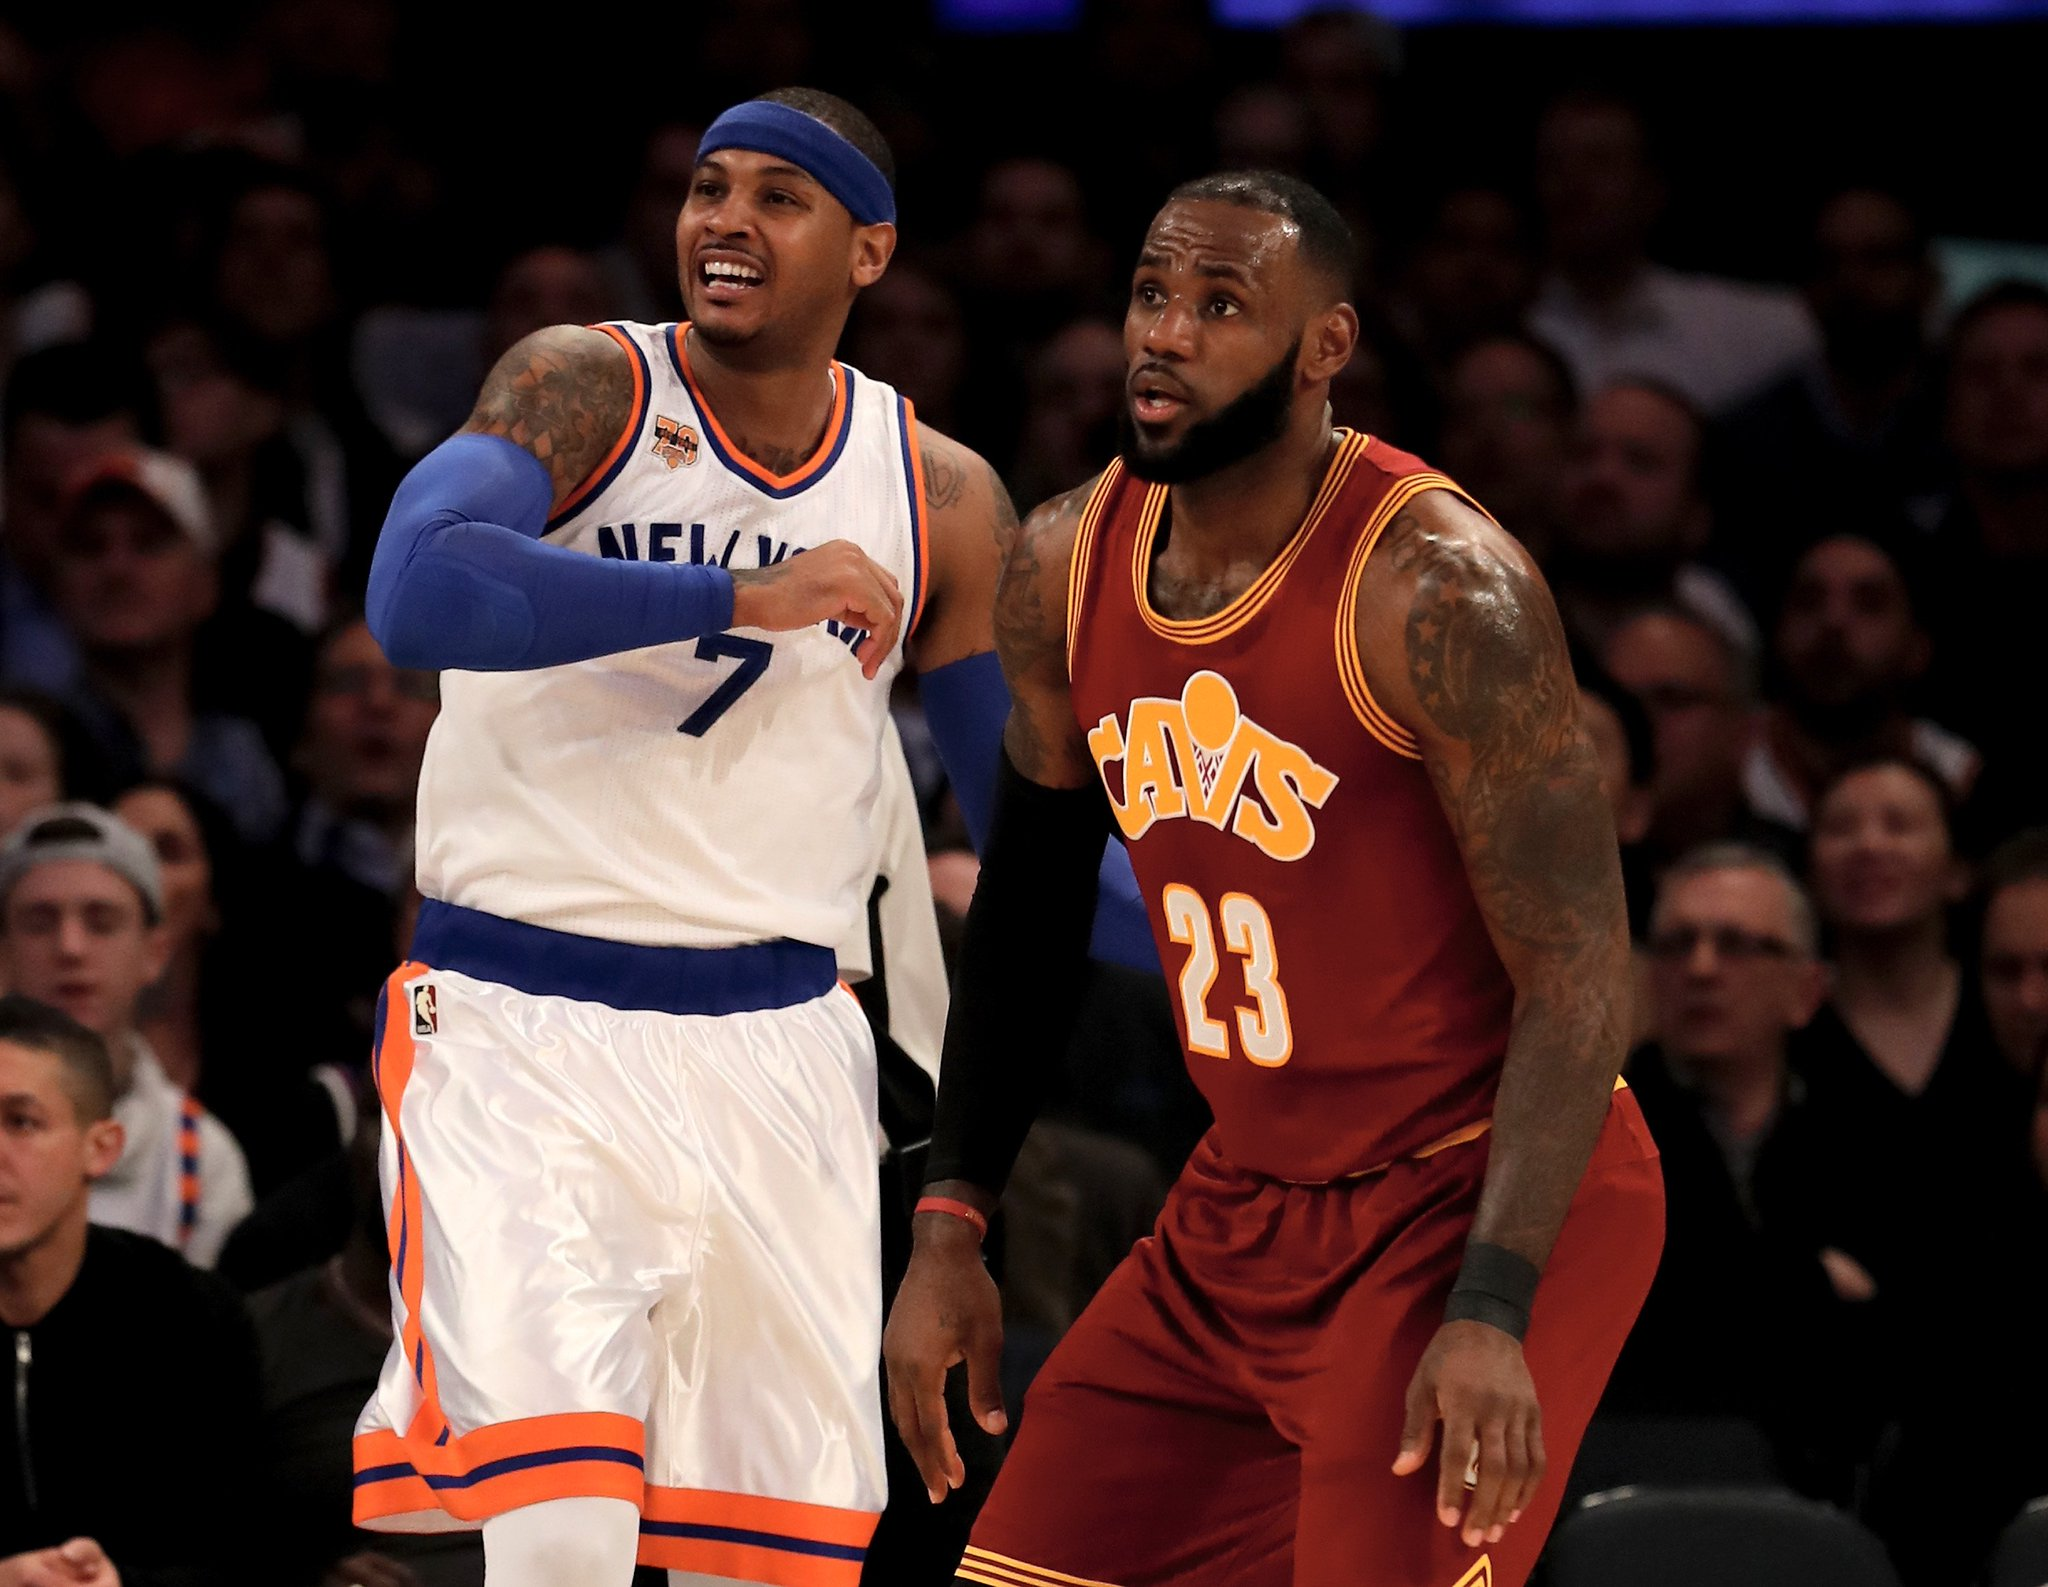 Carmelo Anthony Expands Trade List To Include Cavaliers: https://t.co/Q89noVPBZb https://t.co/otdesAloEs